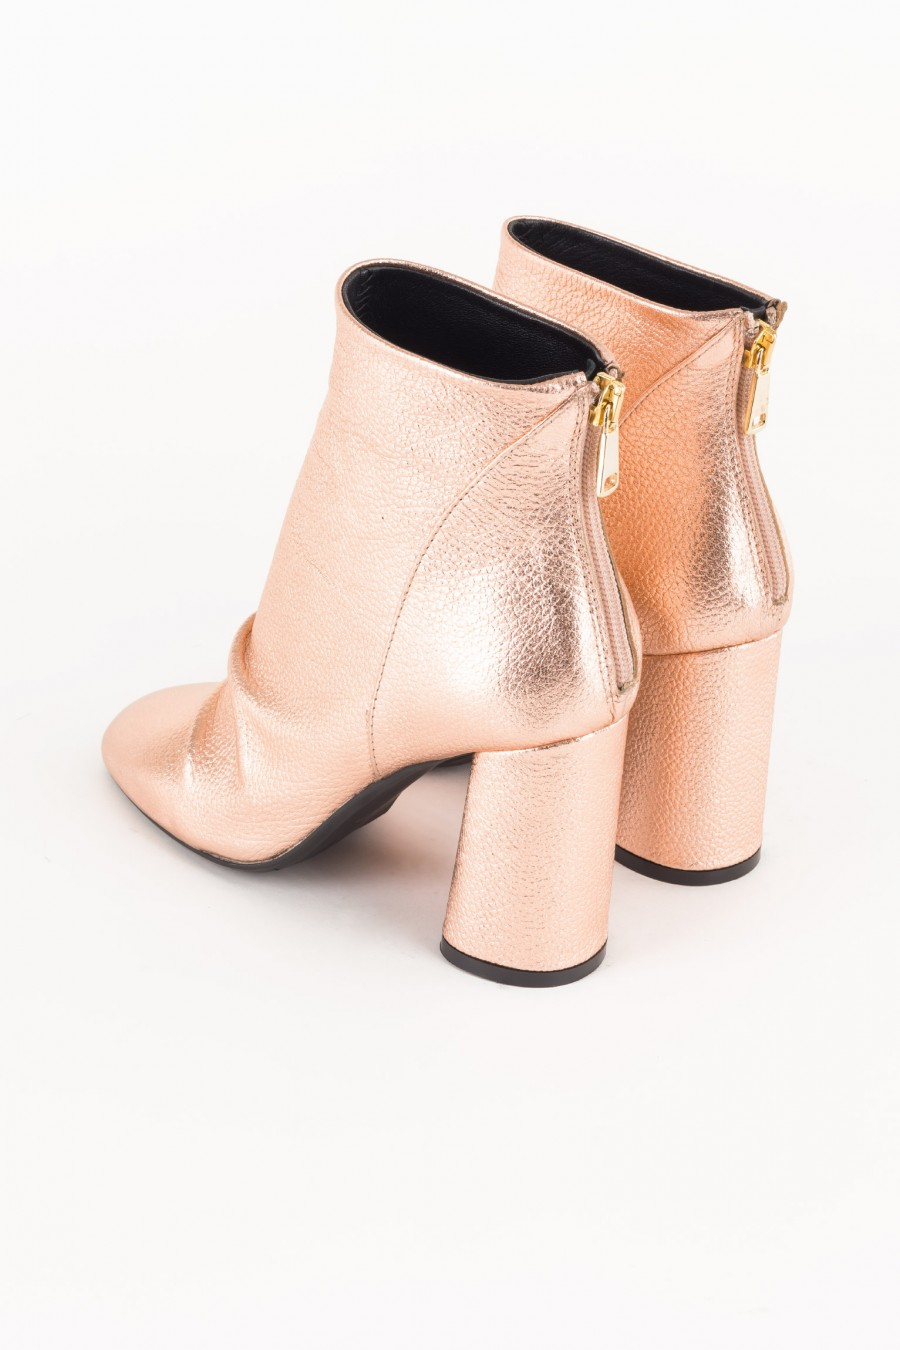 Rosegold leather boots